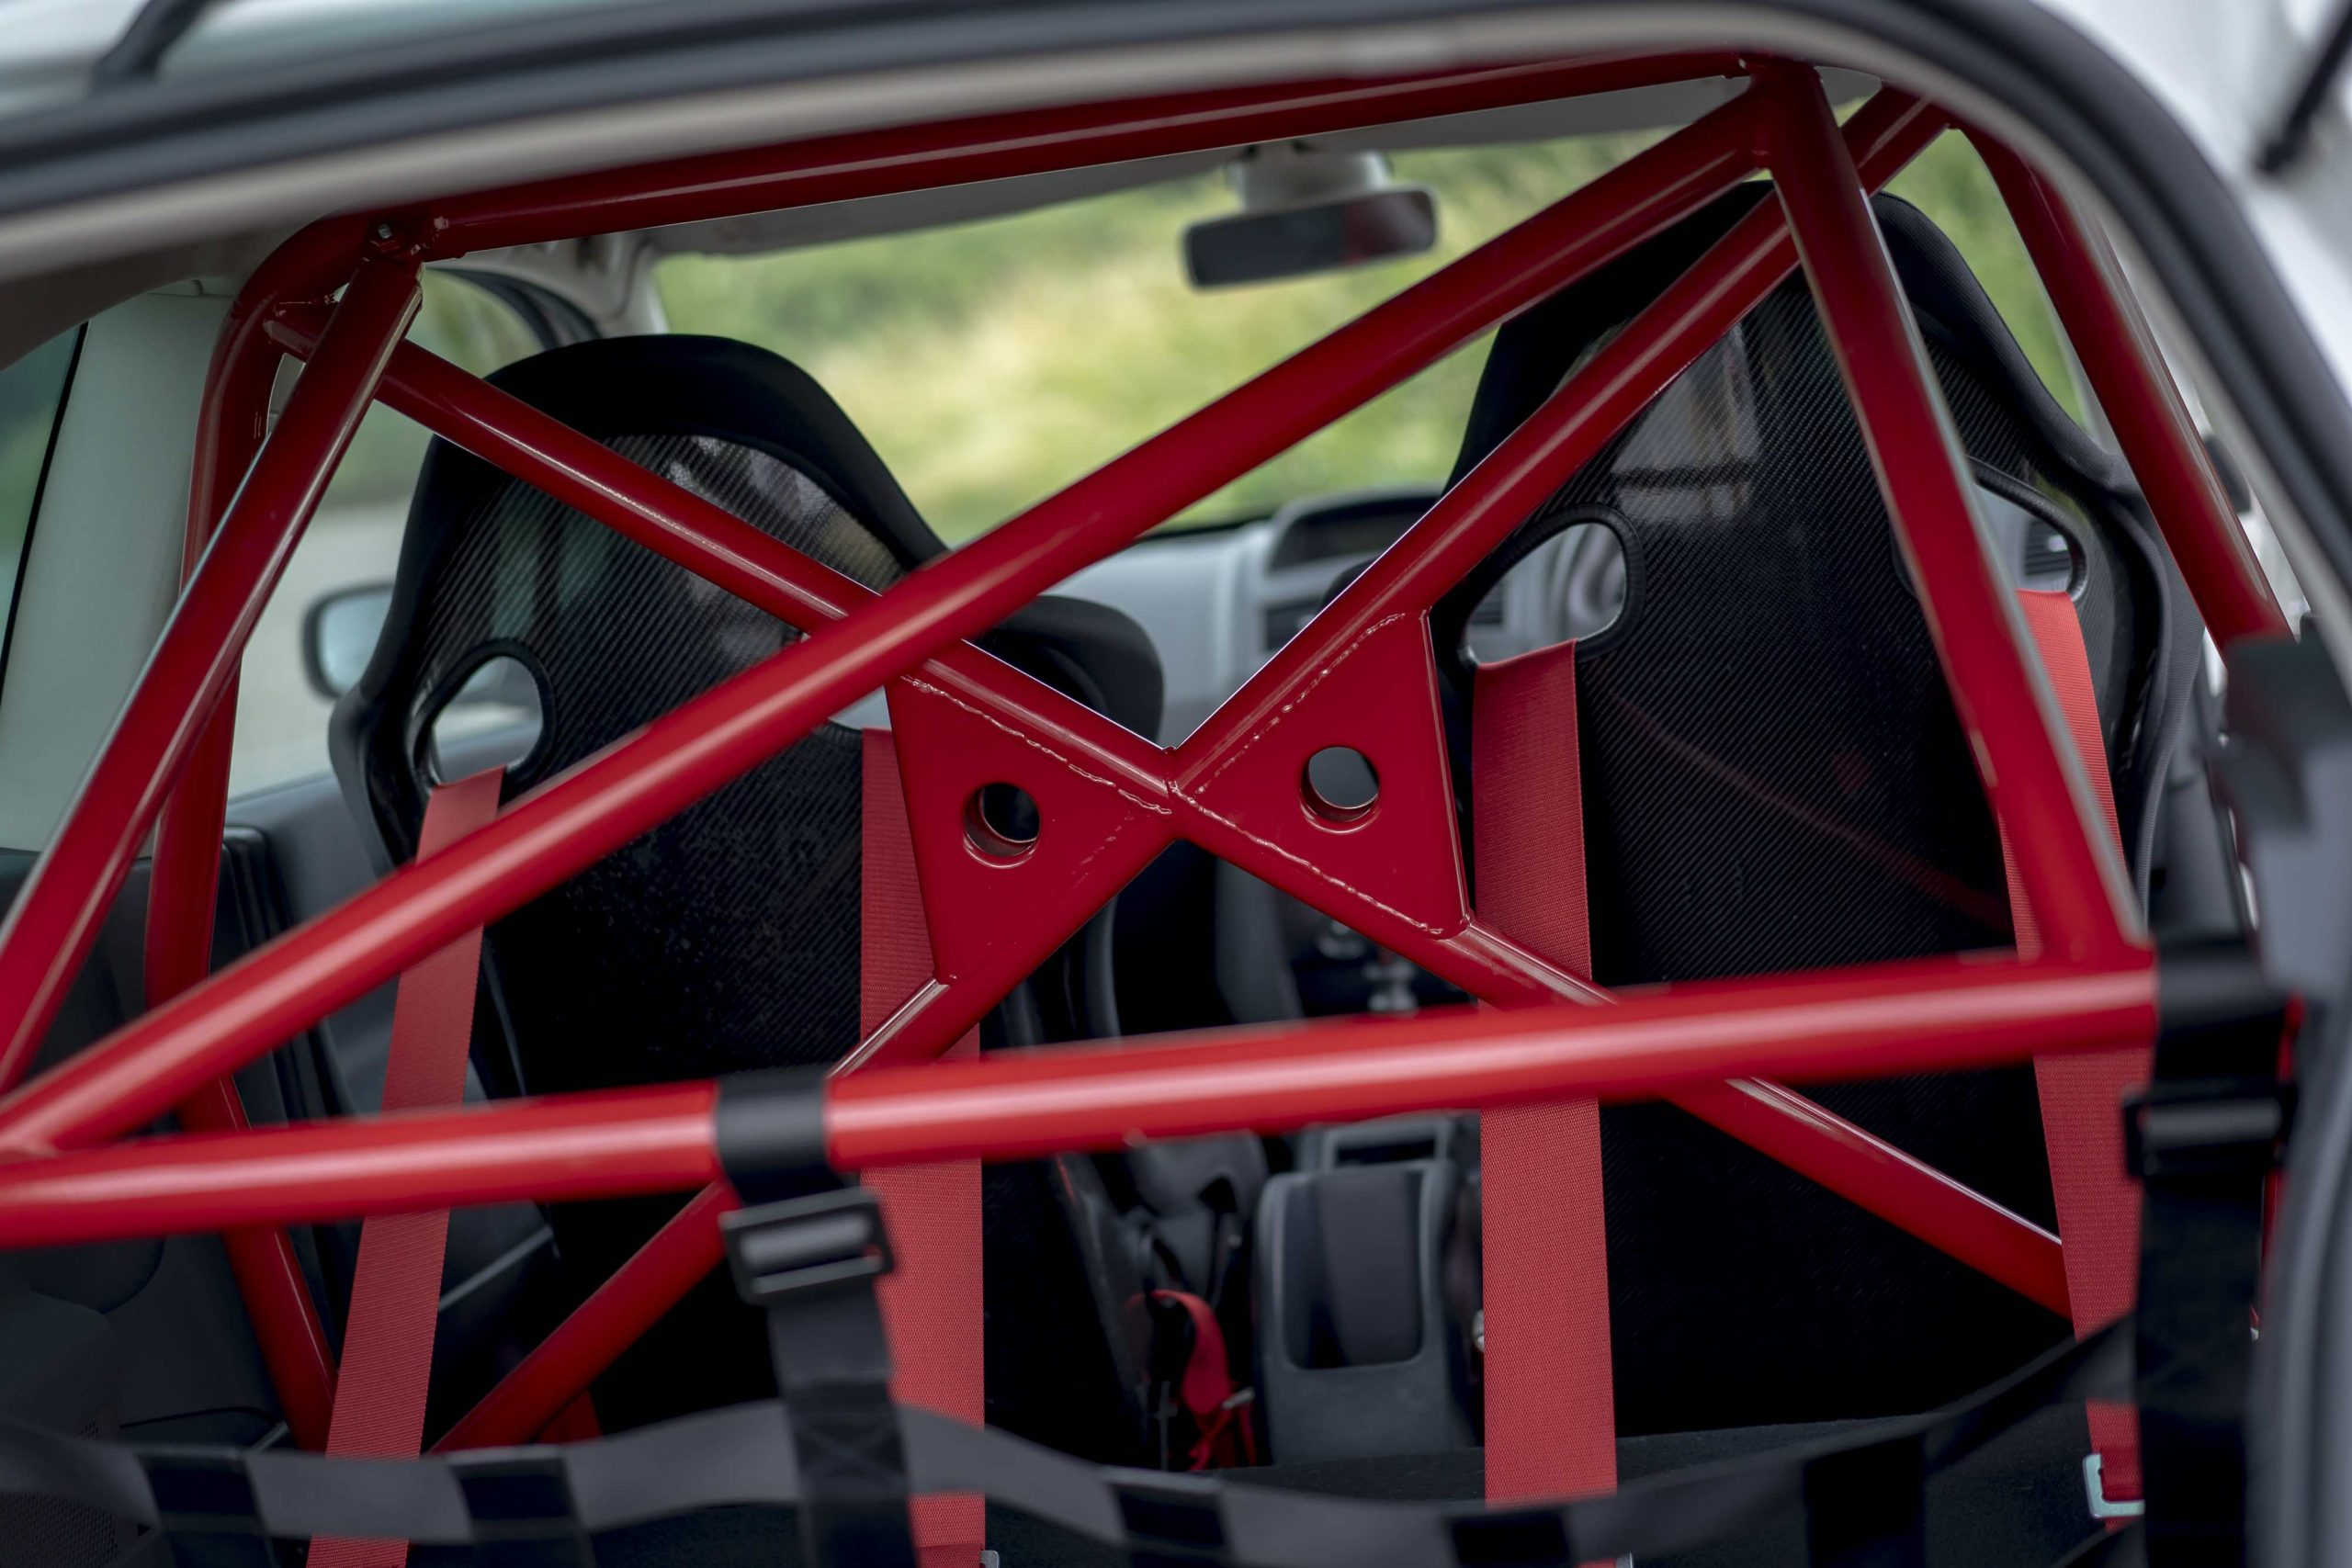 Renault Megane R26R rear roll cage detail